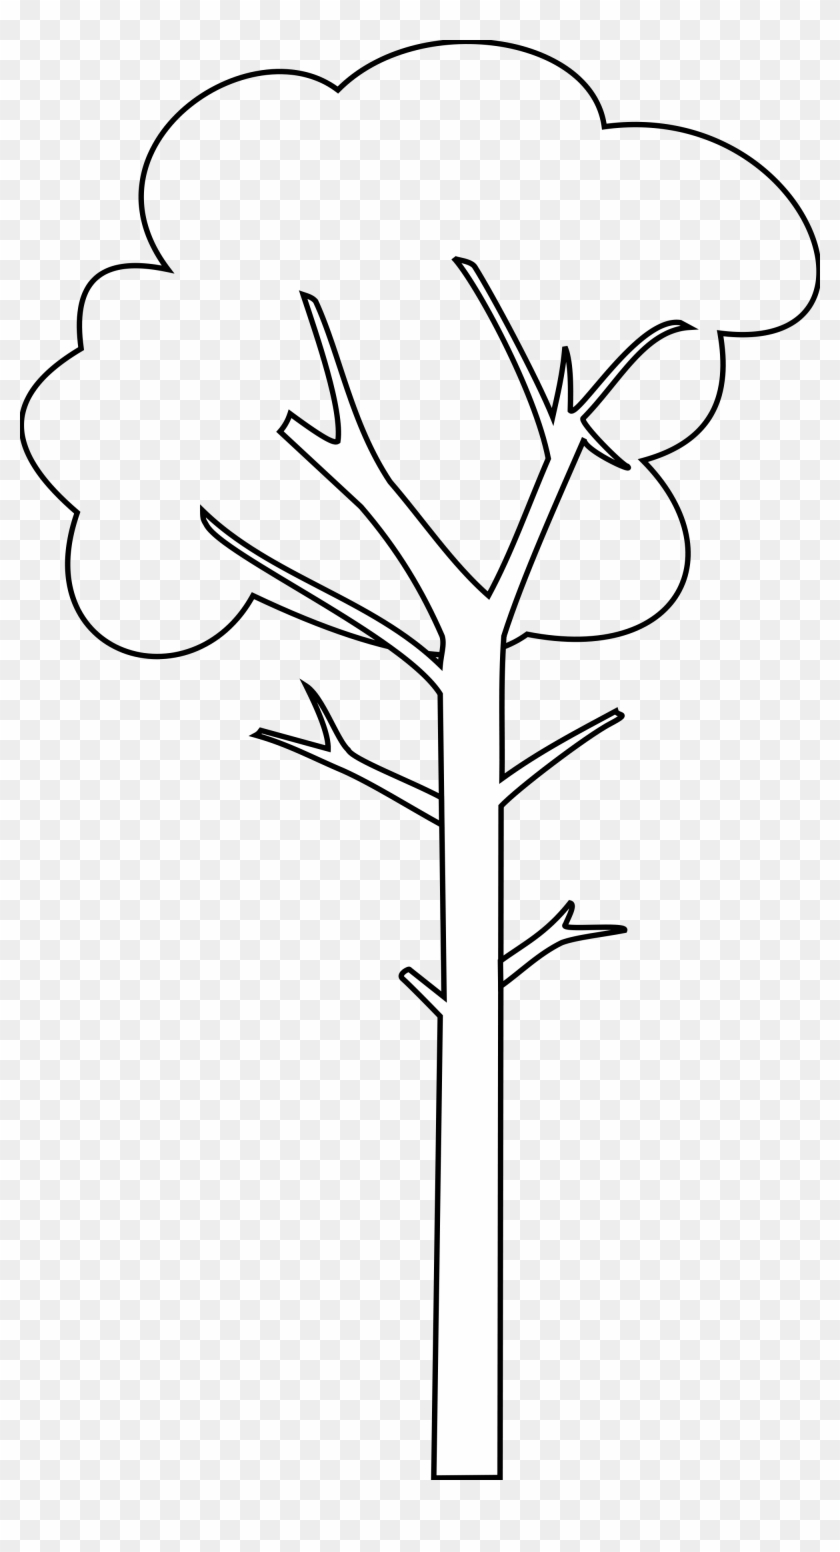 Tall Tree Cartoon Black And White Free Transparent Png Clipart Images Download Find & download free graphic resources for trees cartoon. tall tree cartoon black and white